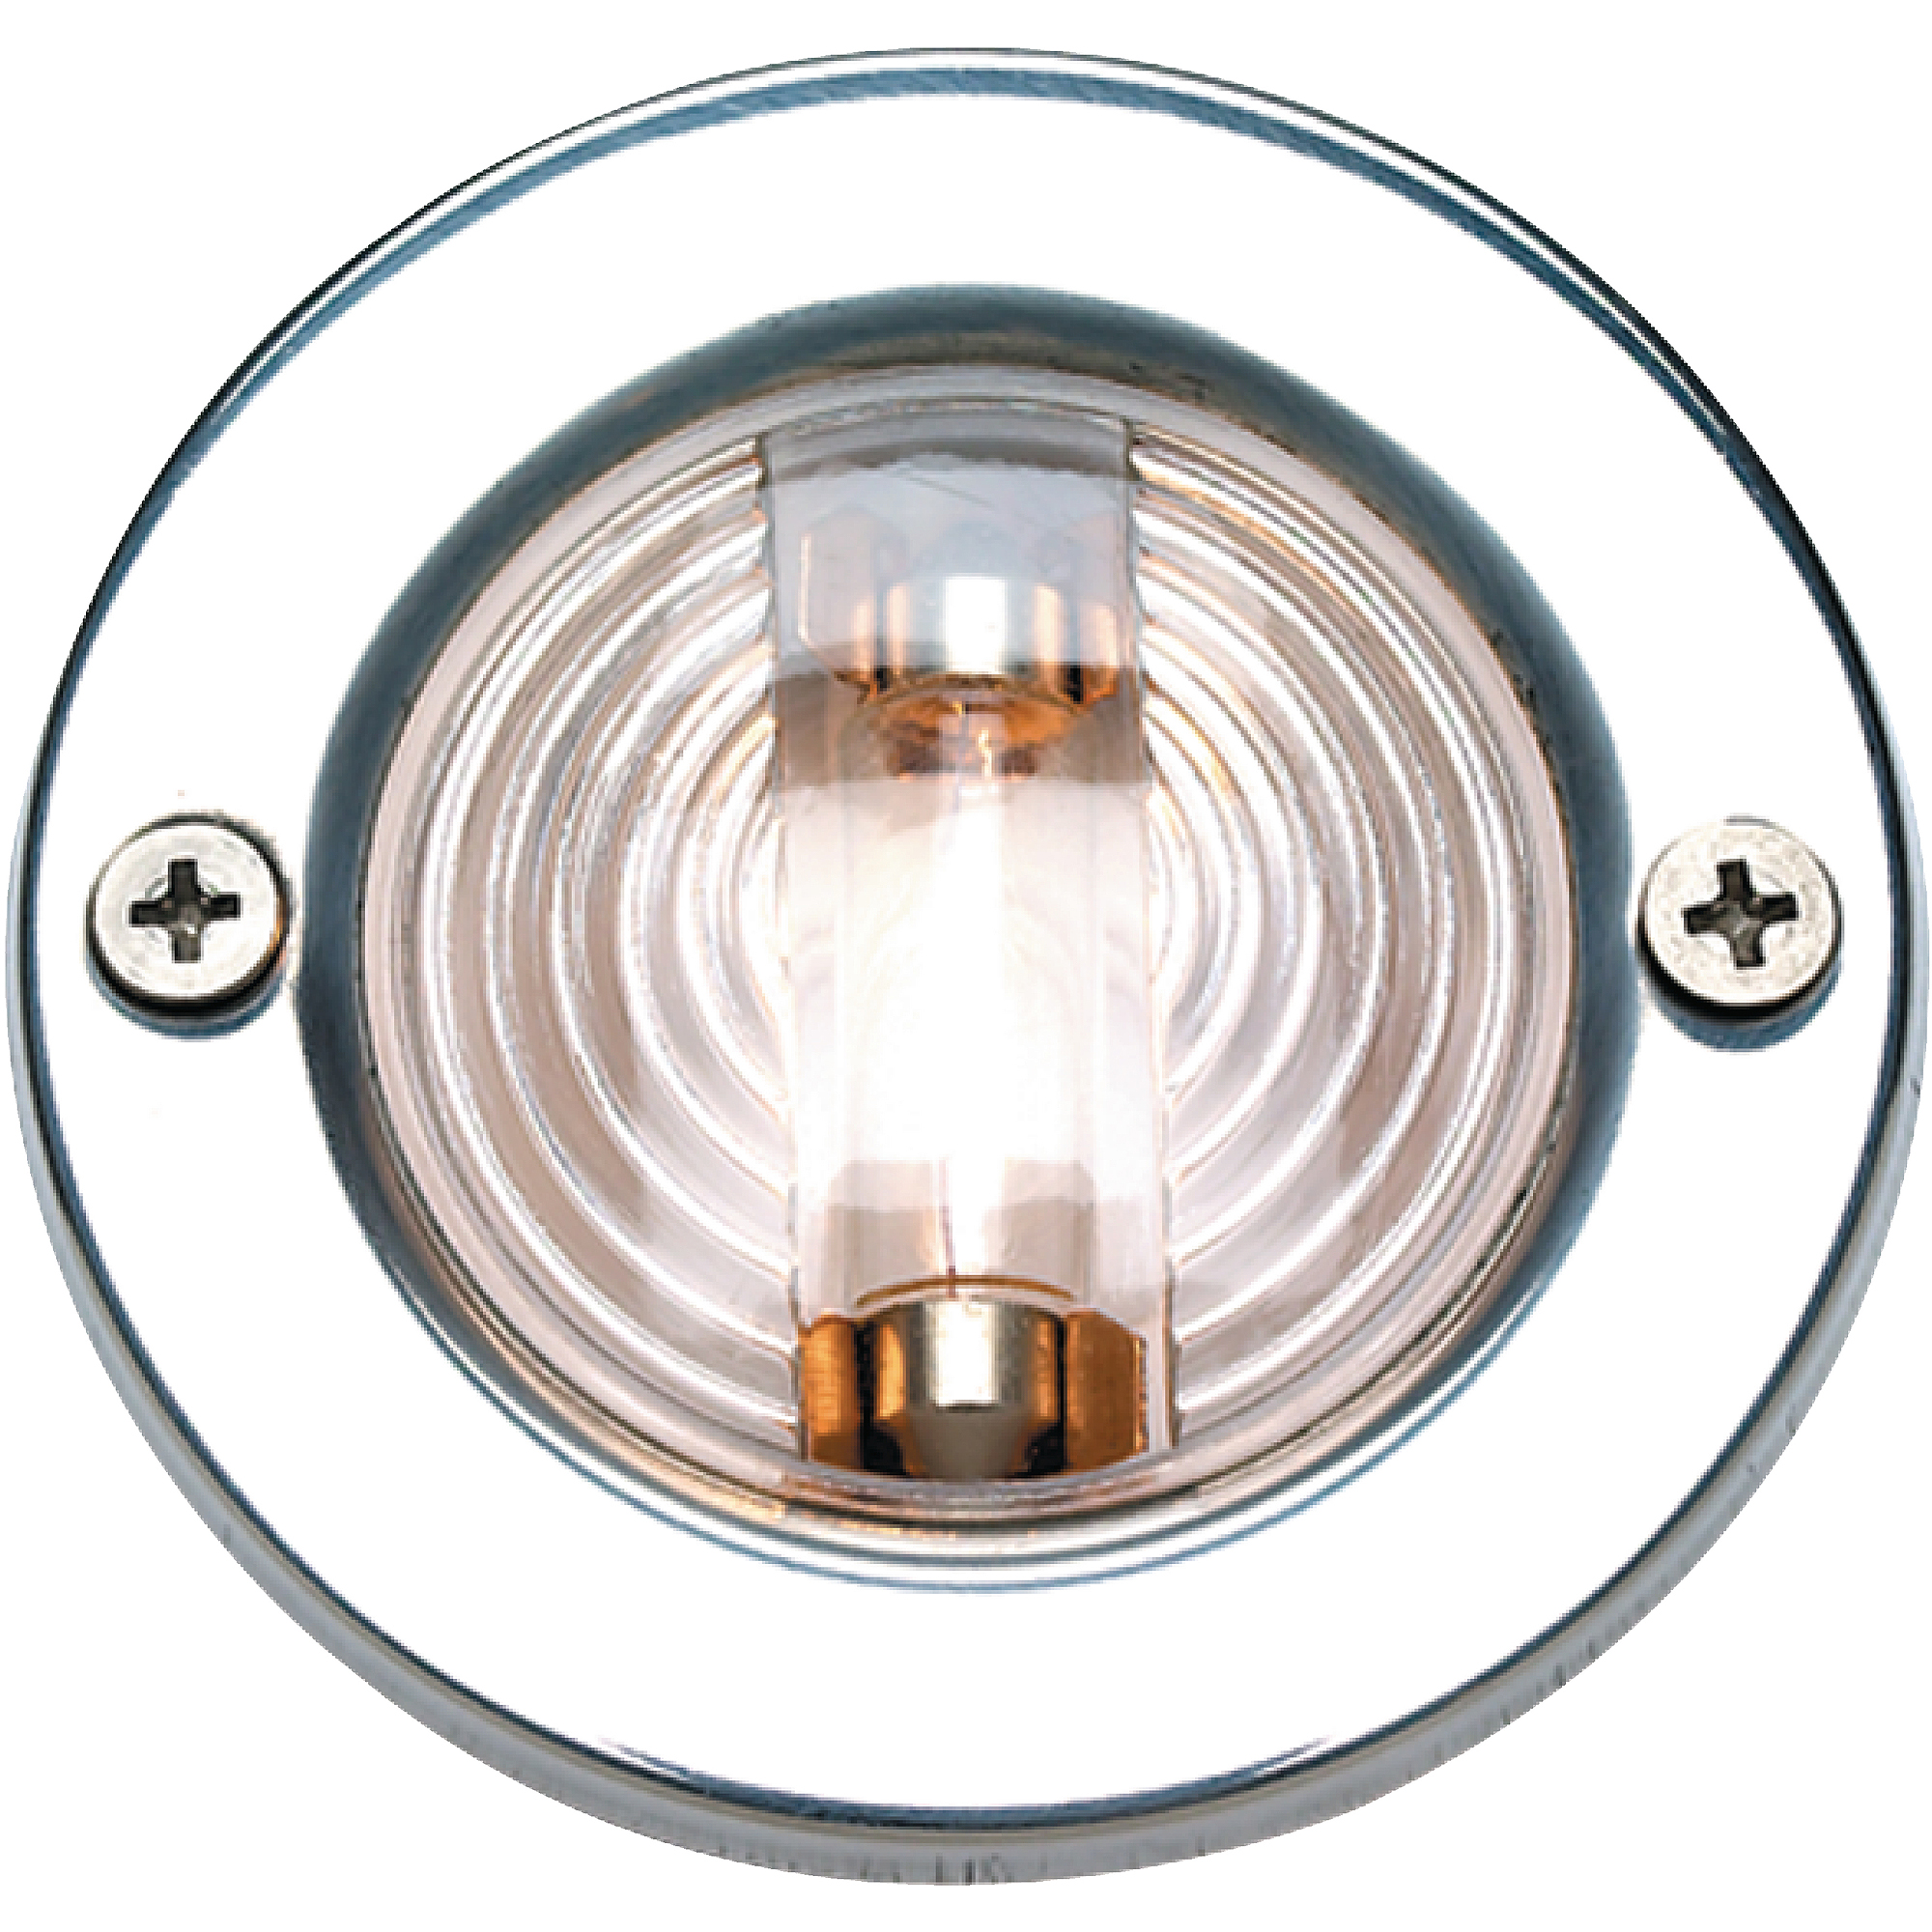 "Seachoice 3"" Transom Light with Stainless Steel Flange"